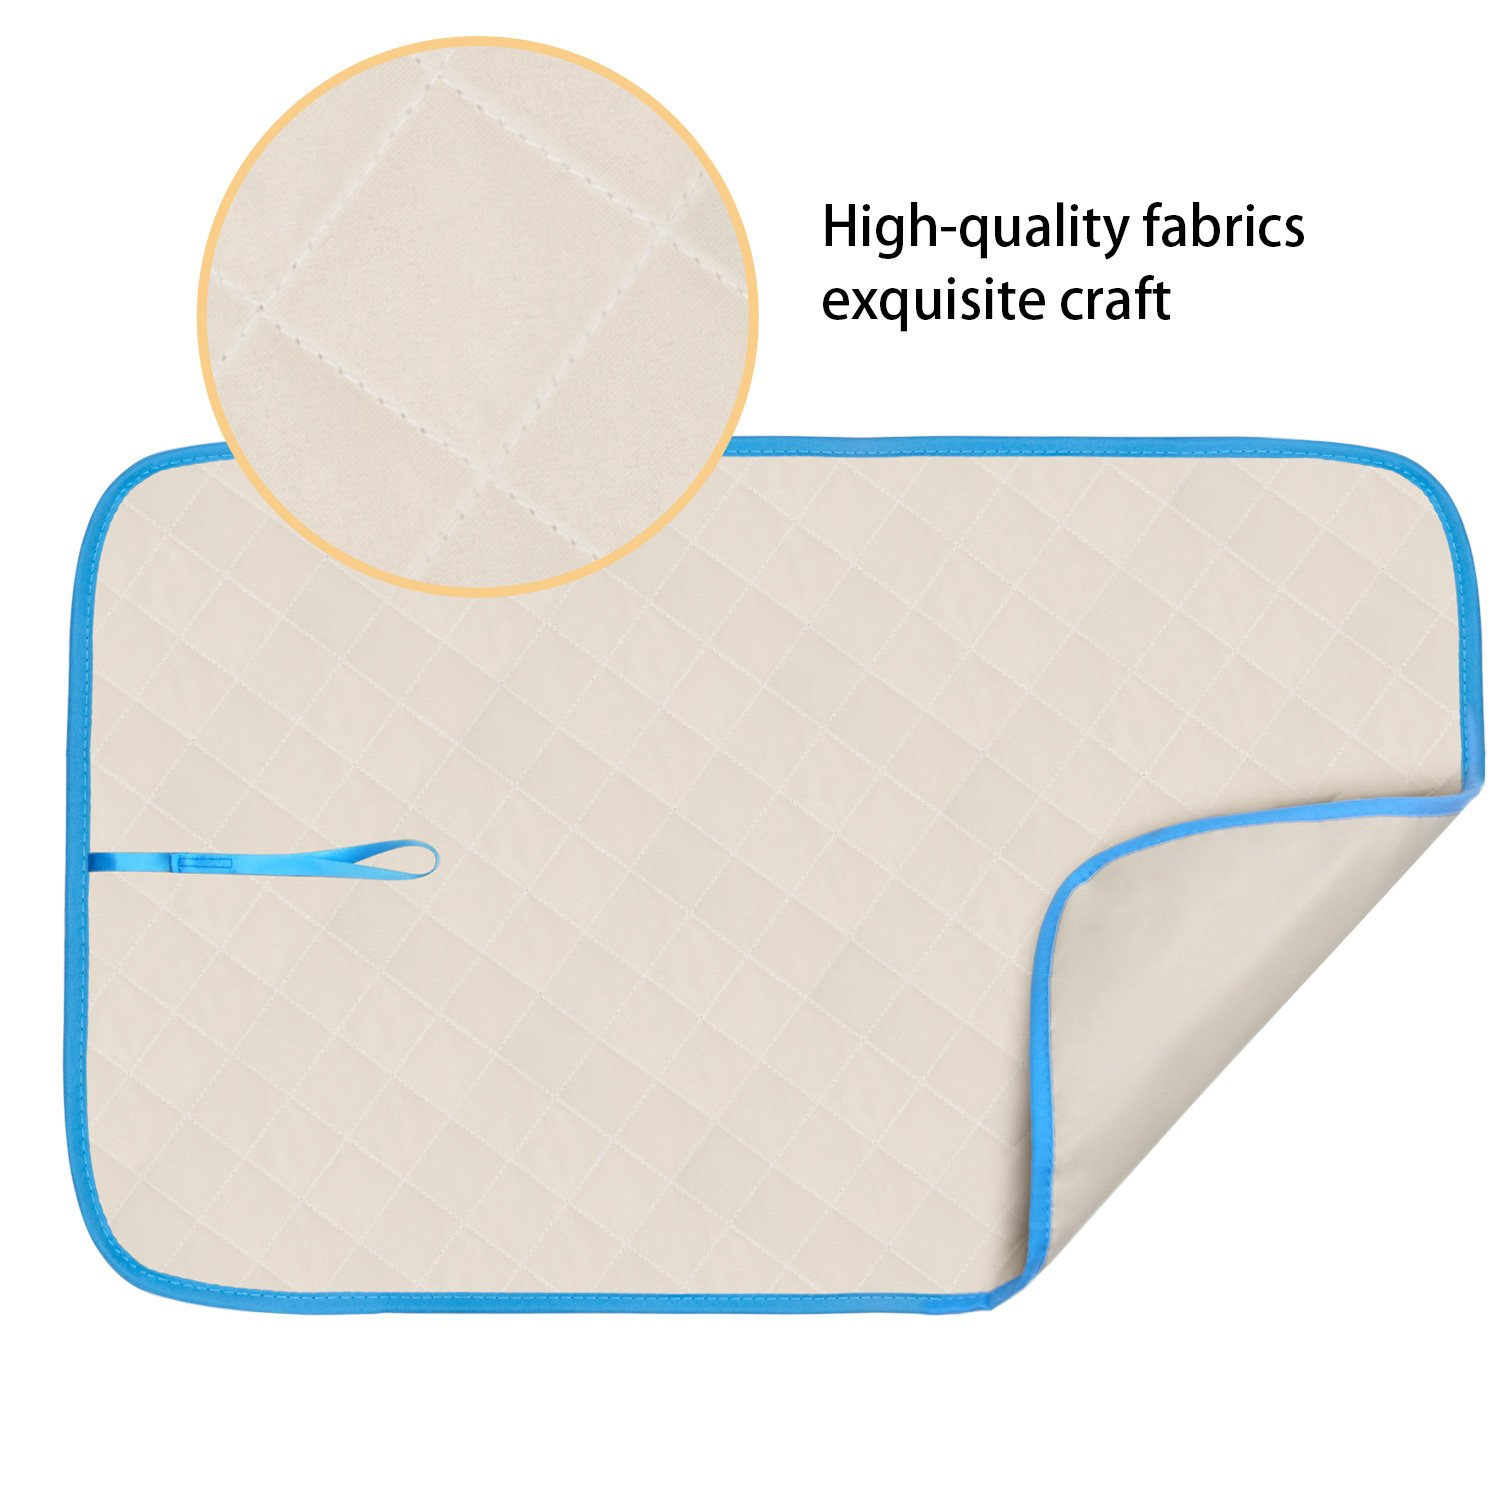 Portable Travel Ironing Pad,Ironing Board Replacement XGuan Ironing Blanket Ironing Mat Iron Board Alternative for Cover Table Top 18/×33 in